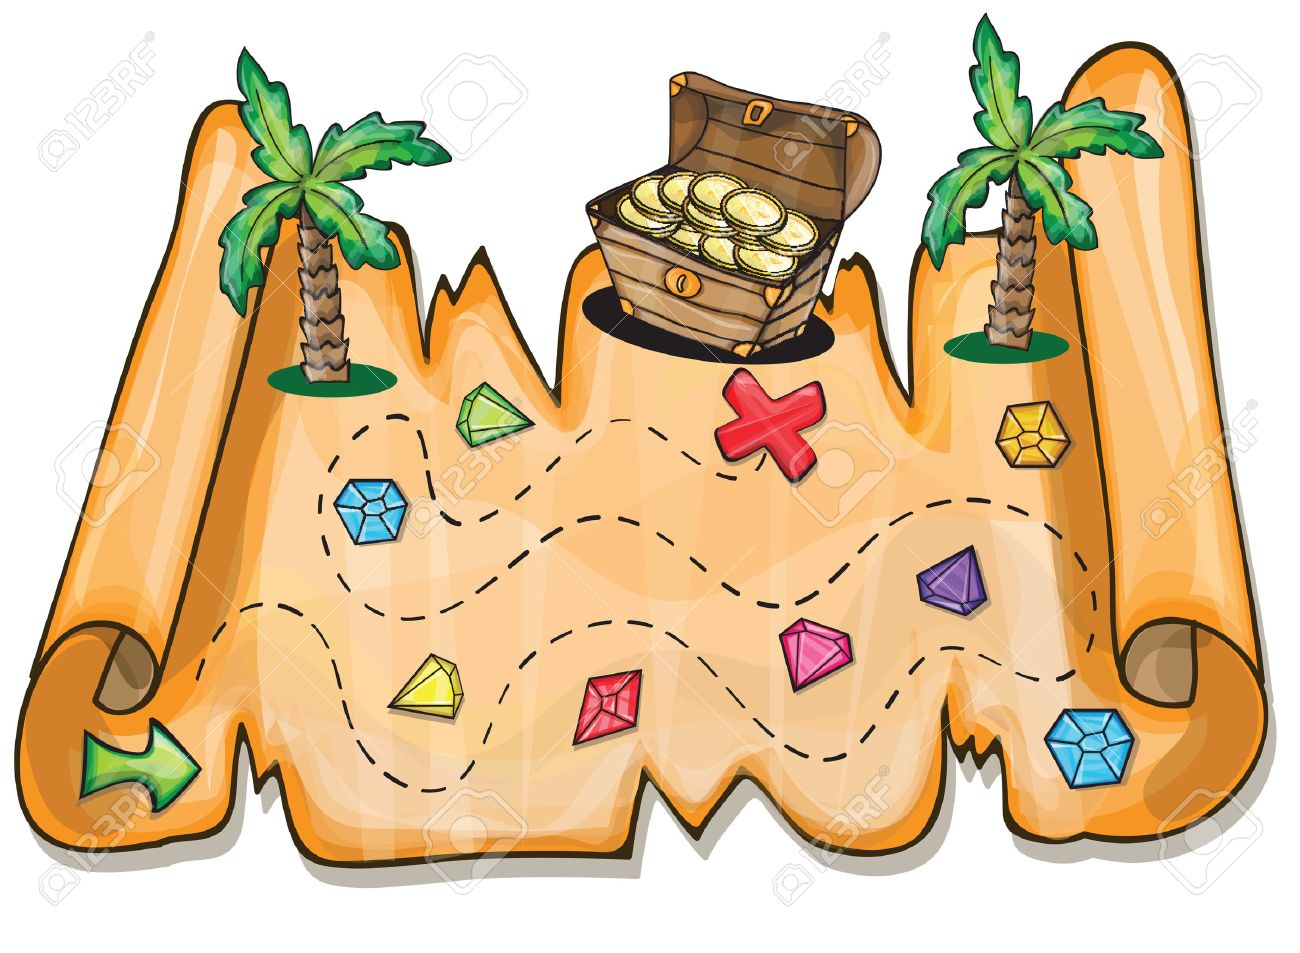 Pirate Treasure Hunt (JPG)